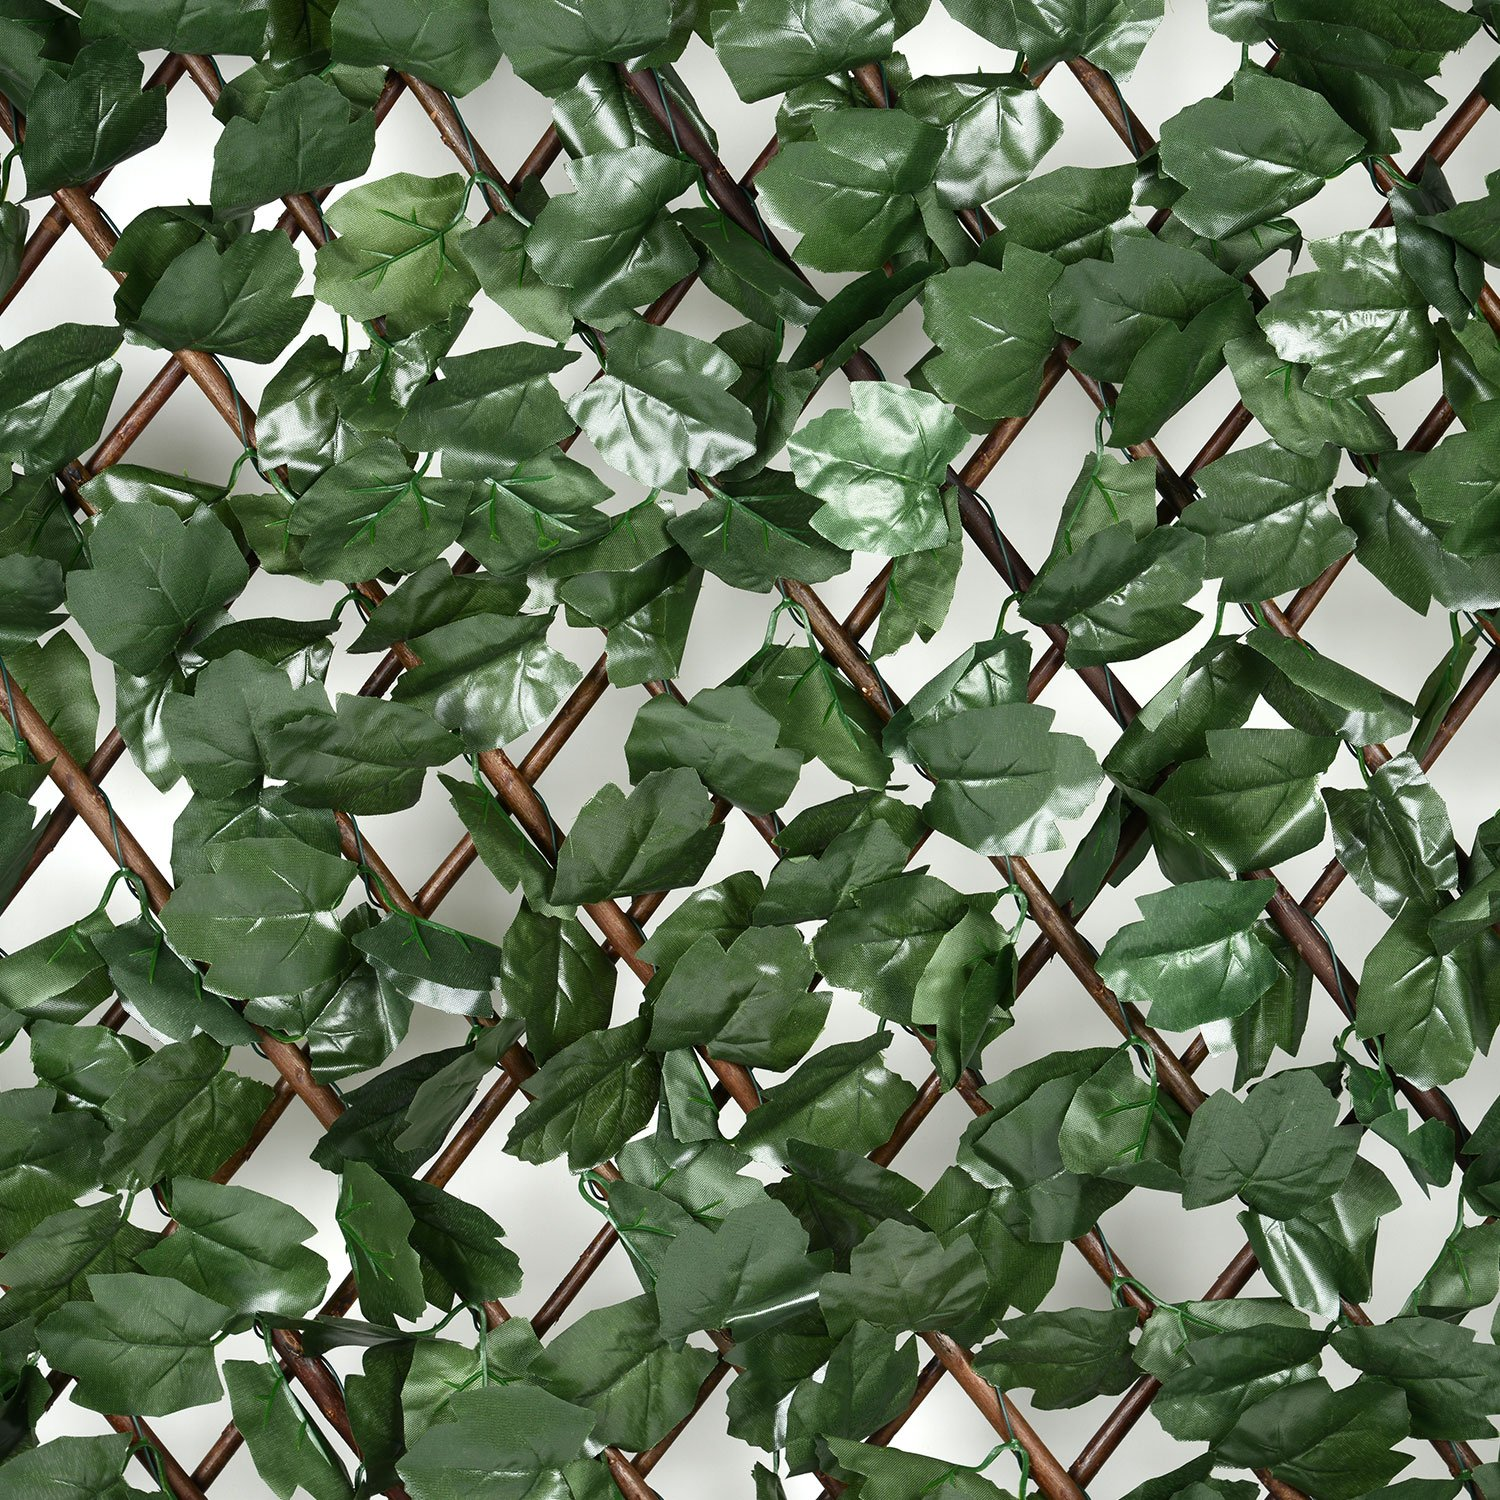 Artificial Leaf Hedge Screening Garden Expanding Trellis Privacy Screen 1m  X 2m